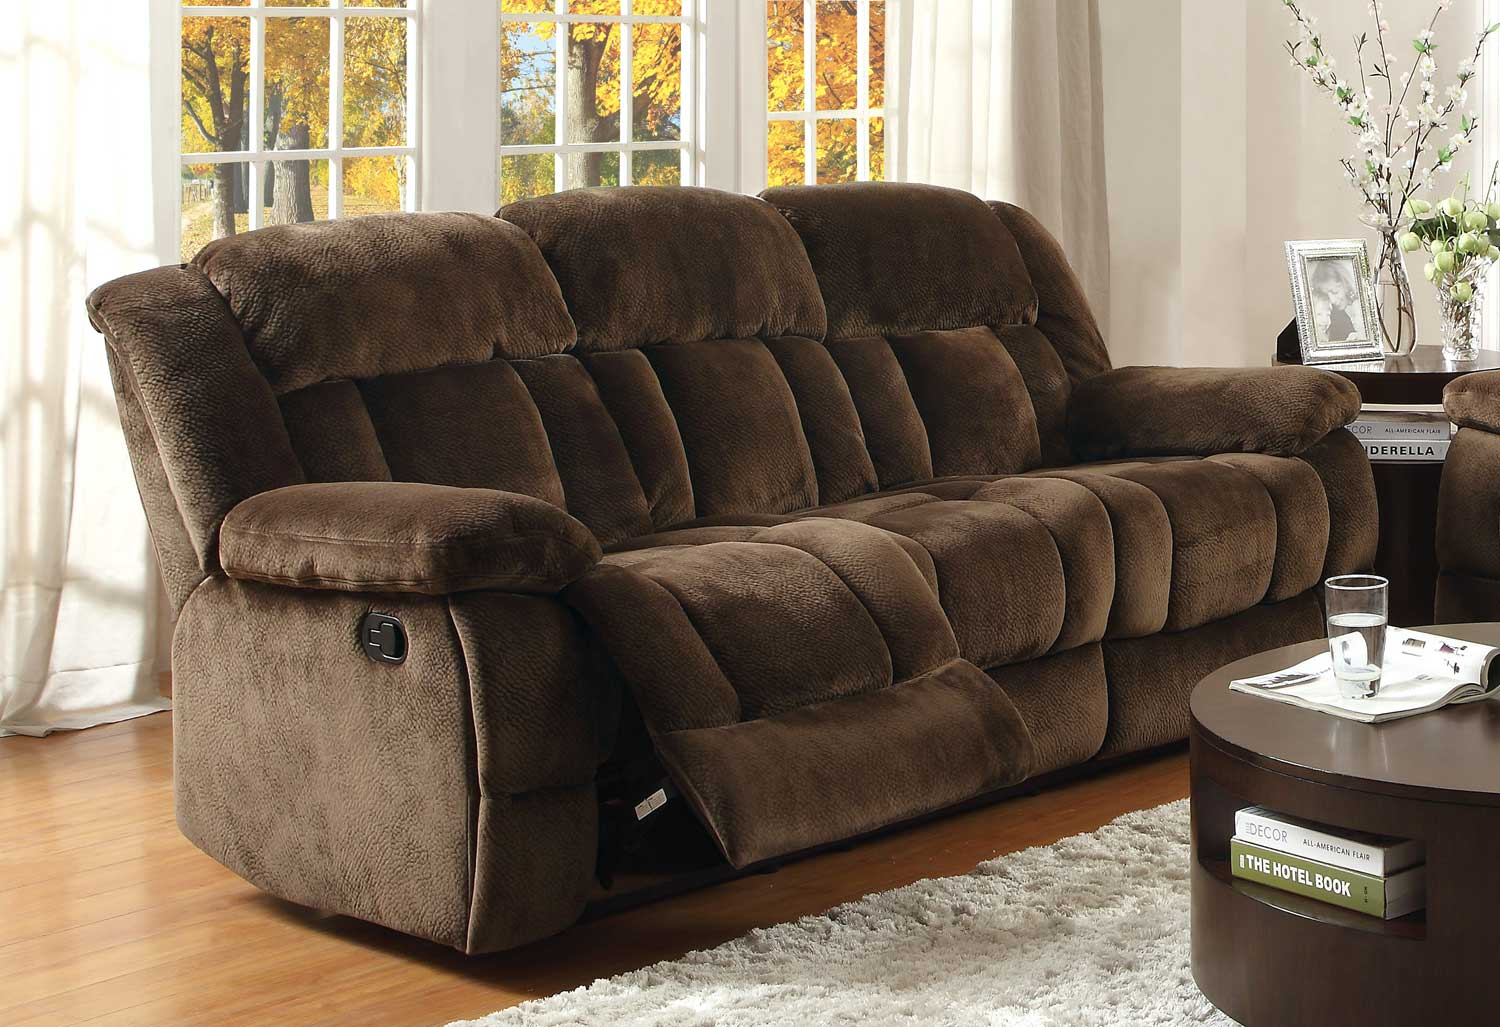 Homelegance laurelton reclining sofa set chocolate textured plush microfiber u9636 3 Brown microfiber couch and loveseat